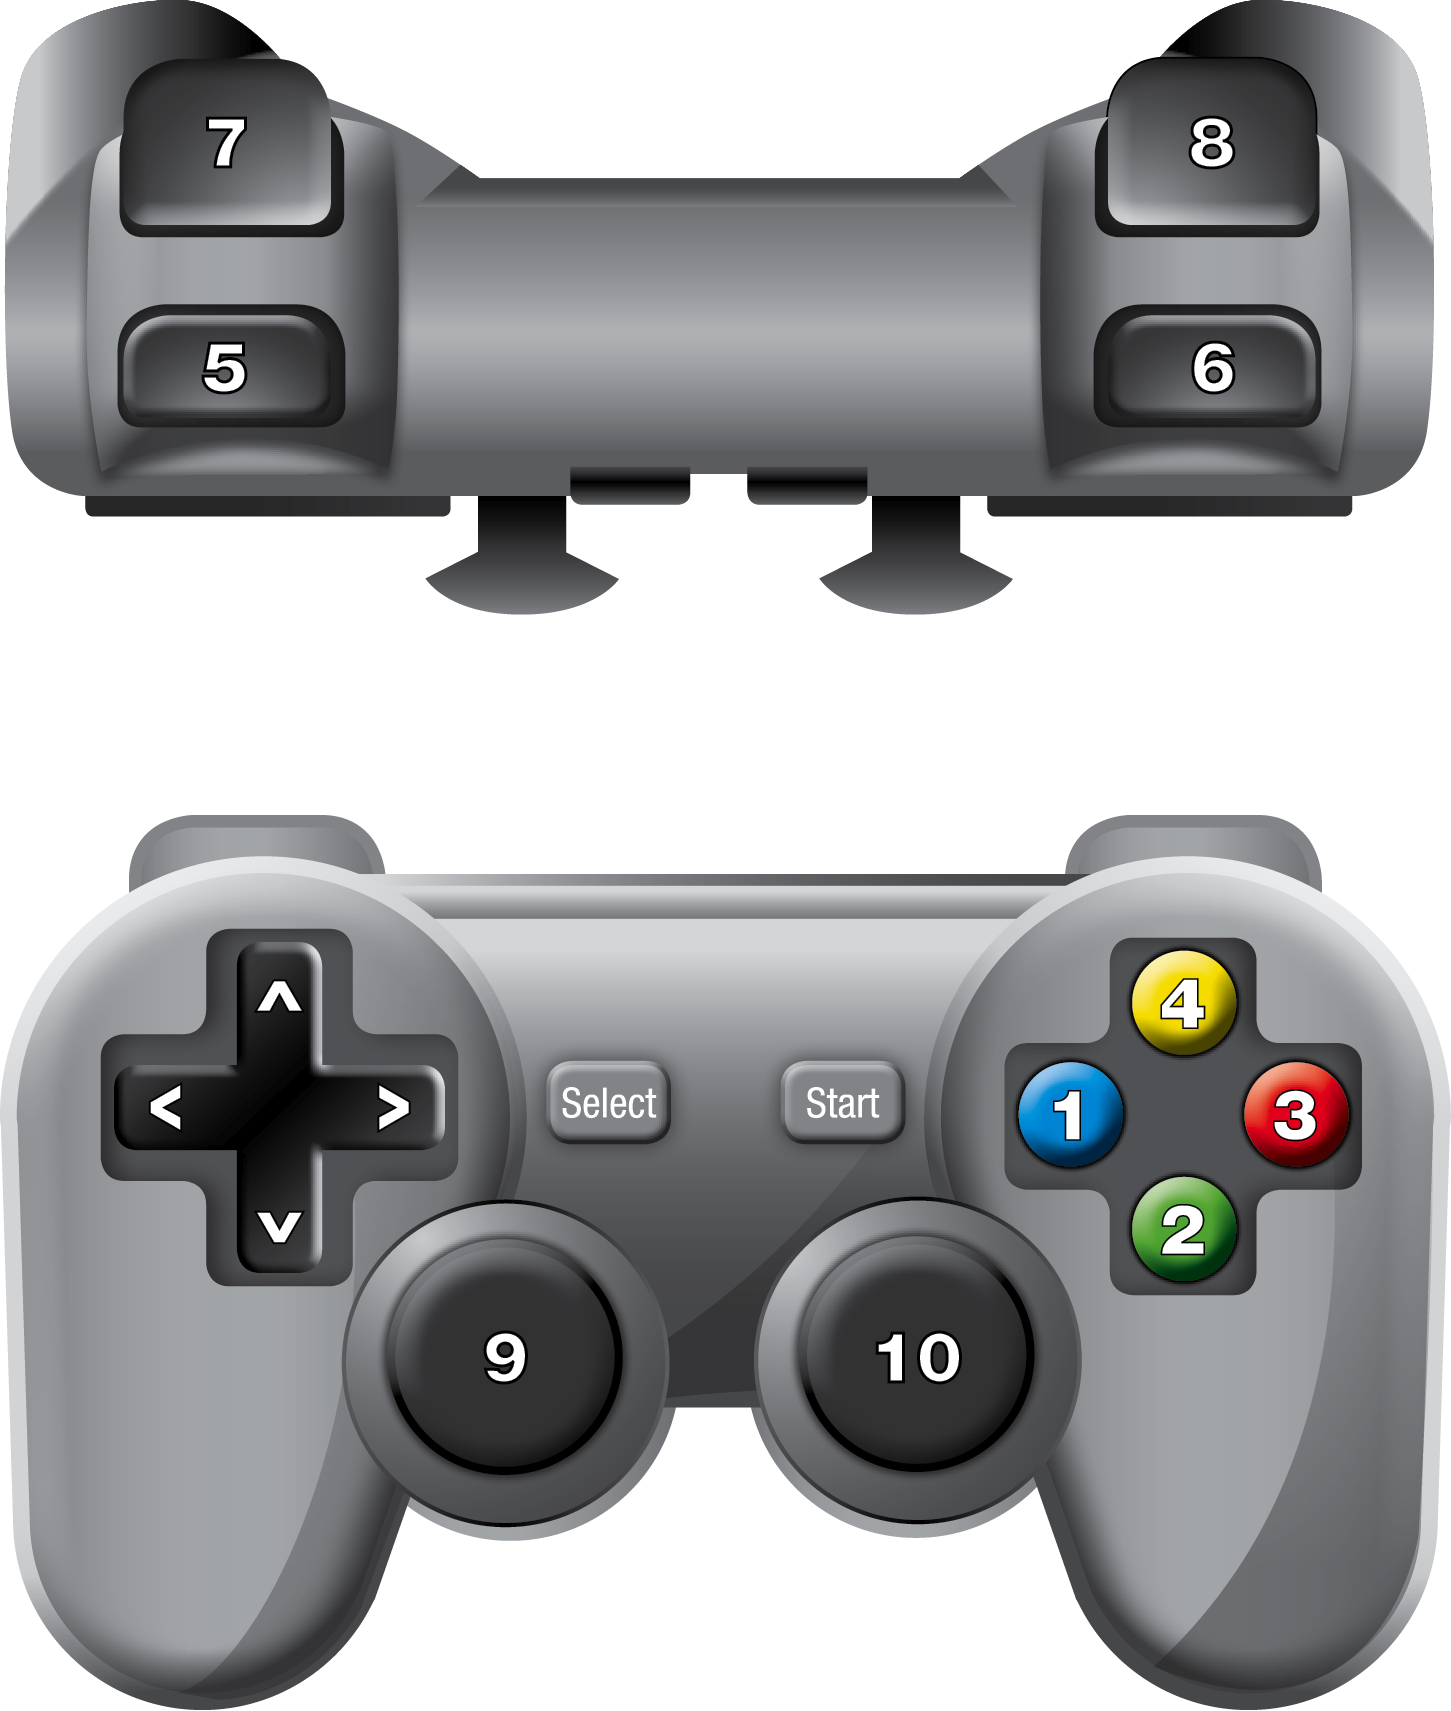 Lego jurassic world manual gamepad control diagram gumiabroncs Images